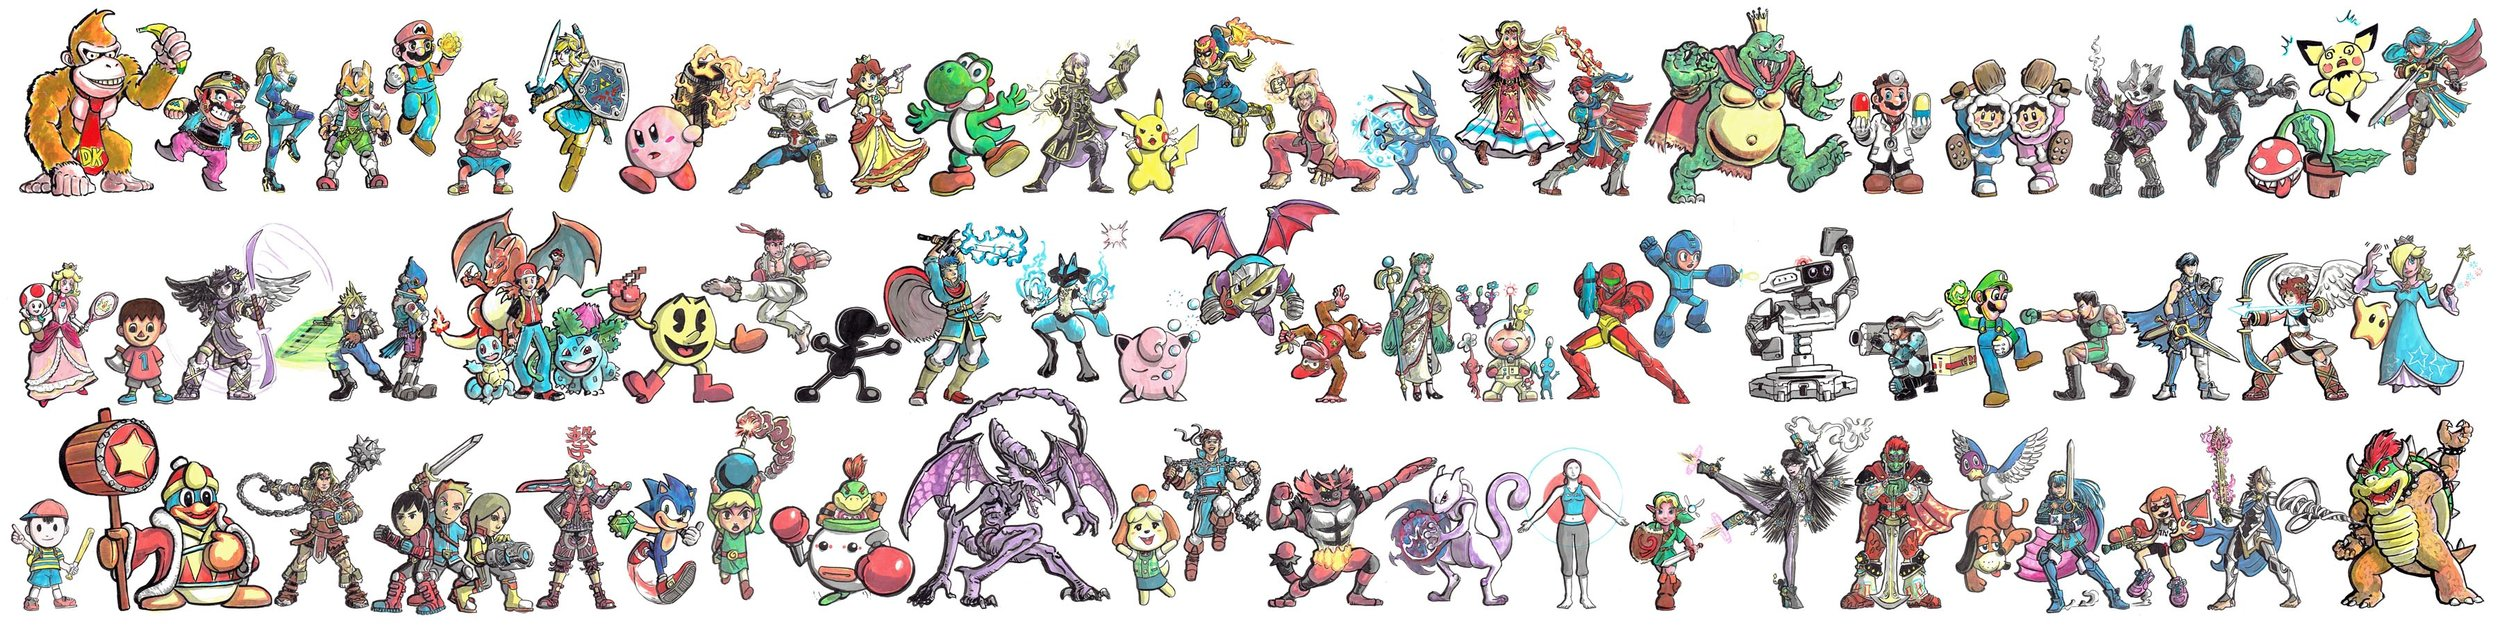 I decided to draw all the Characters of Super Smash Bros. Ultimate leading up to it's release!